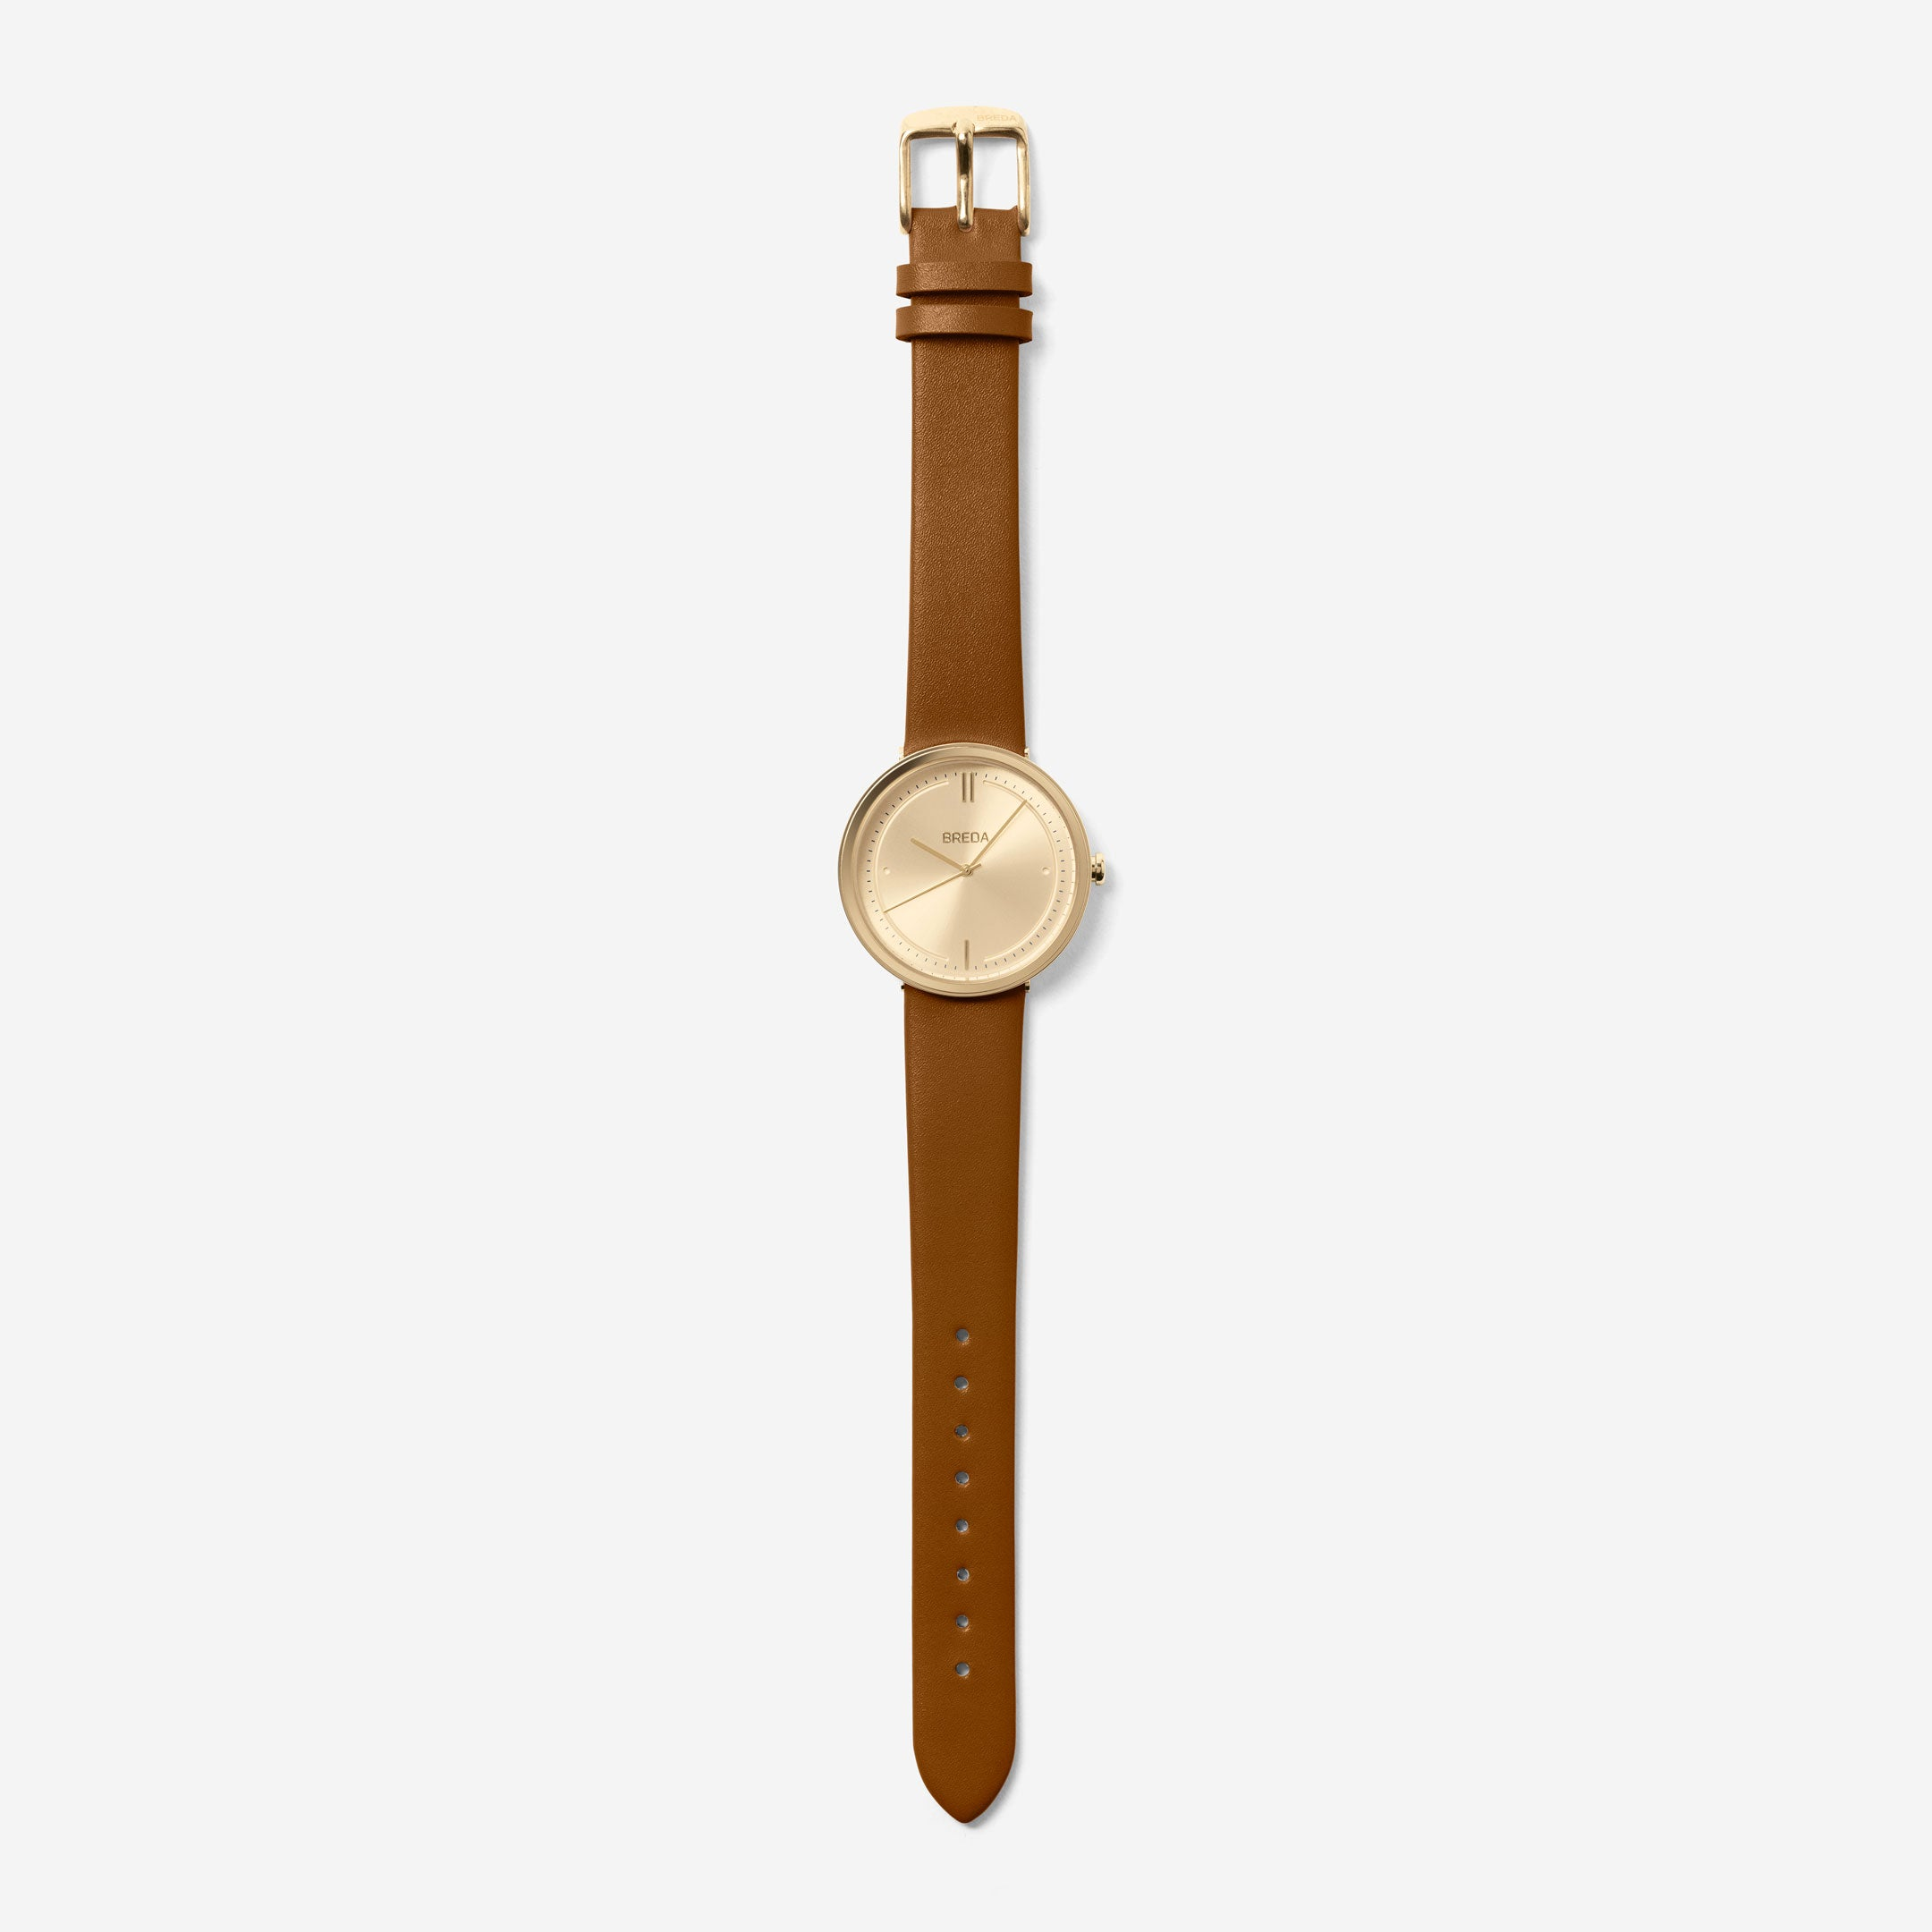 //cdn.shopify.com/s/files/1/0879/6650/products/breda-agnes-1733e-gold-brown-leather-watch-long_1024x1024.jpg?v=1522789137